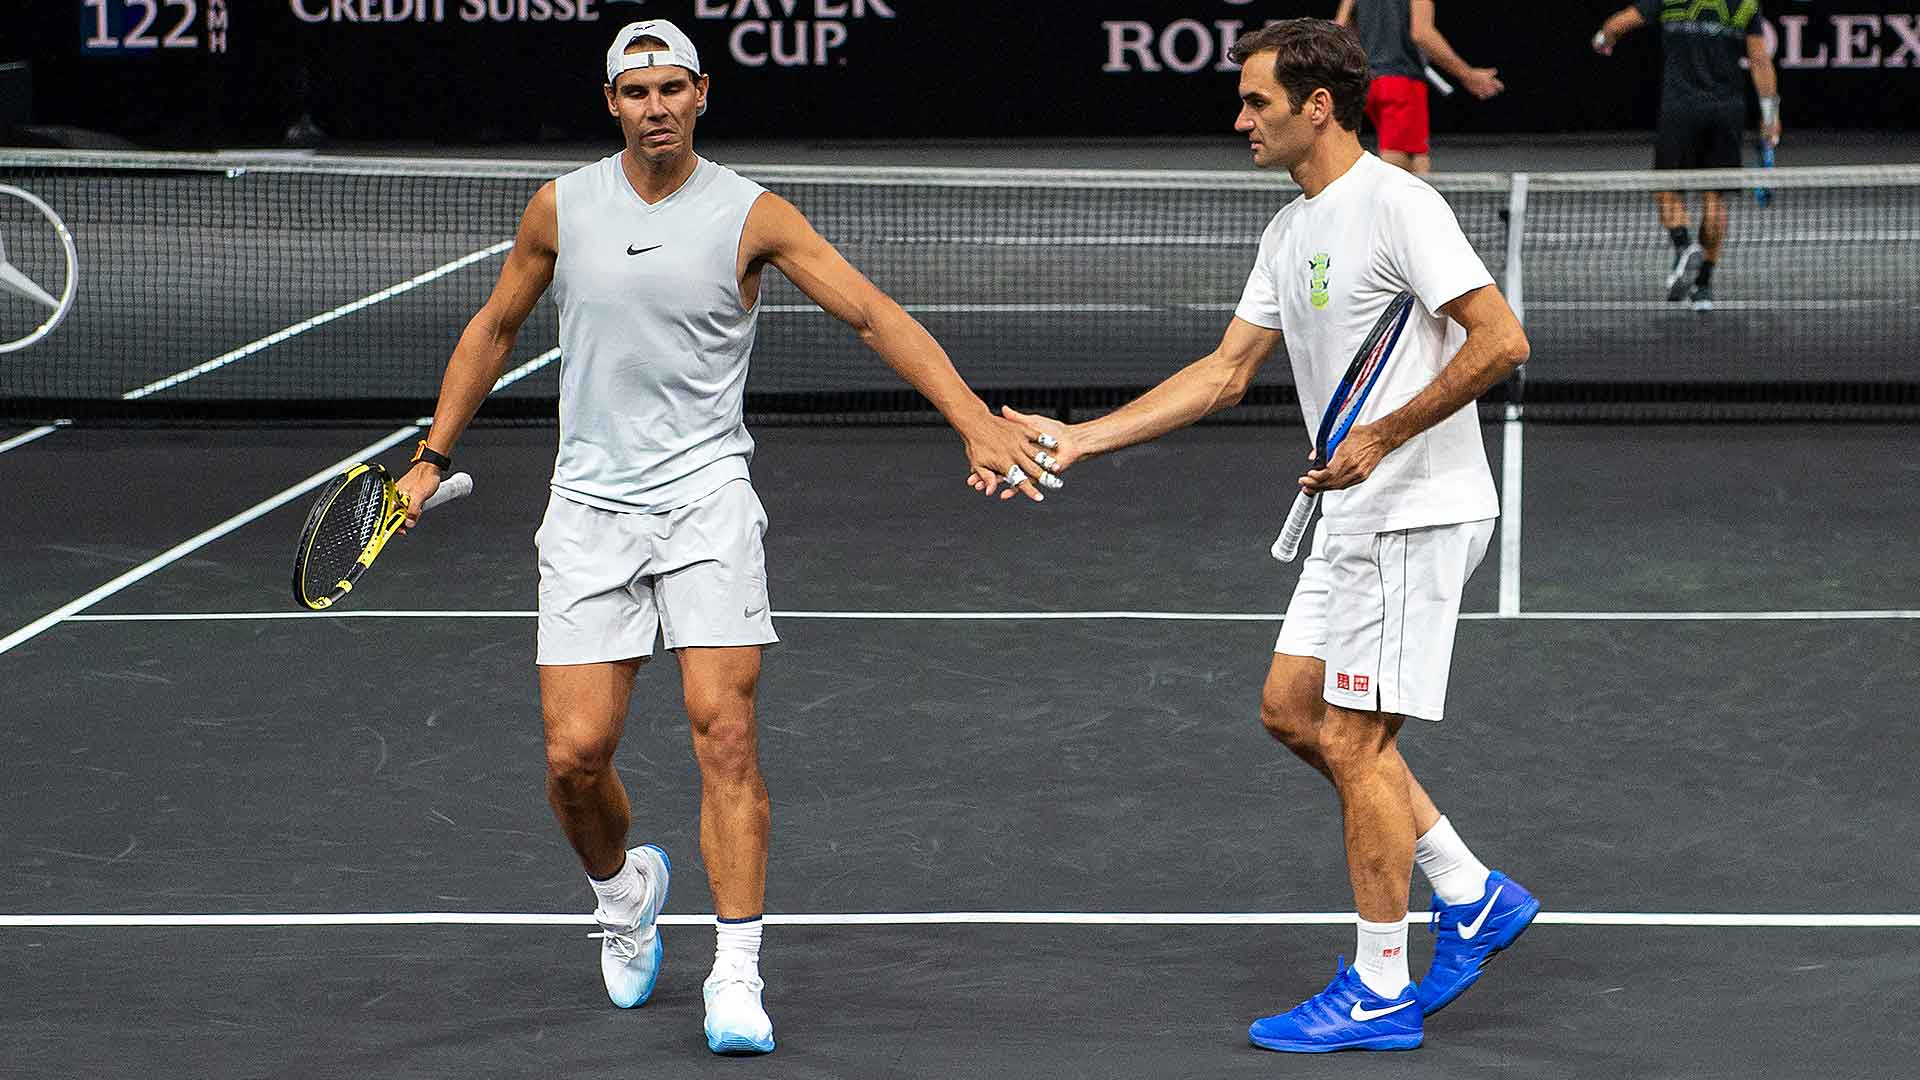 <a href='/en/players/rafael-nadal/n409/overview'>Rafael Nadal</a> and <a href='/en/players/roger-federer/f324/overview'>Roger Federer</a> practise ahead of the 2019 <a href='/en/tournaments/laver-cup/9210/overview'>Laver Cup</a> in Geneva.